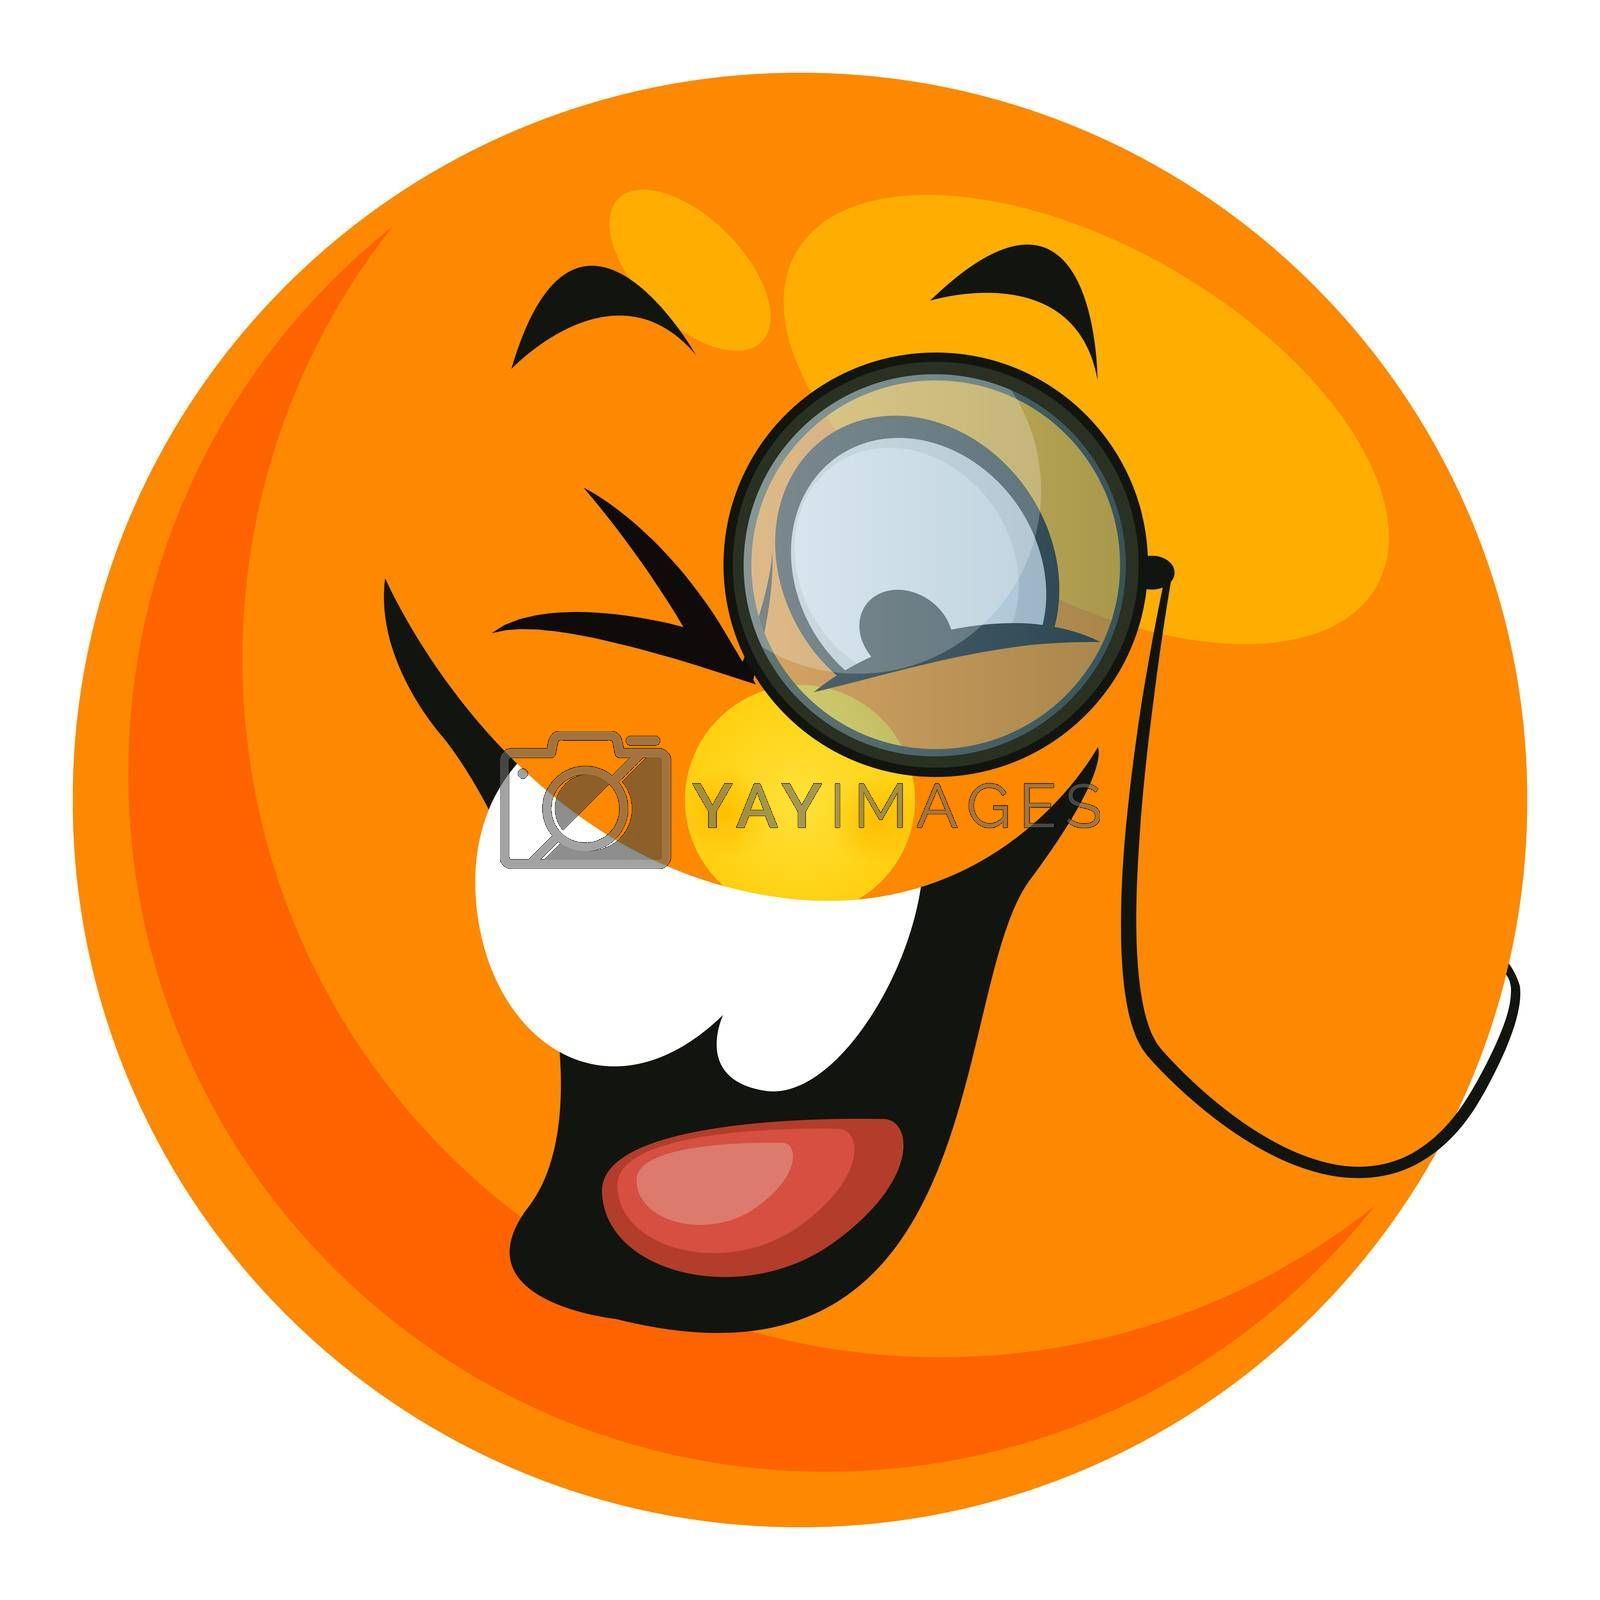 Emoji with monocle, illustration, vector on white background